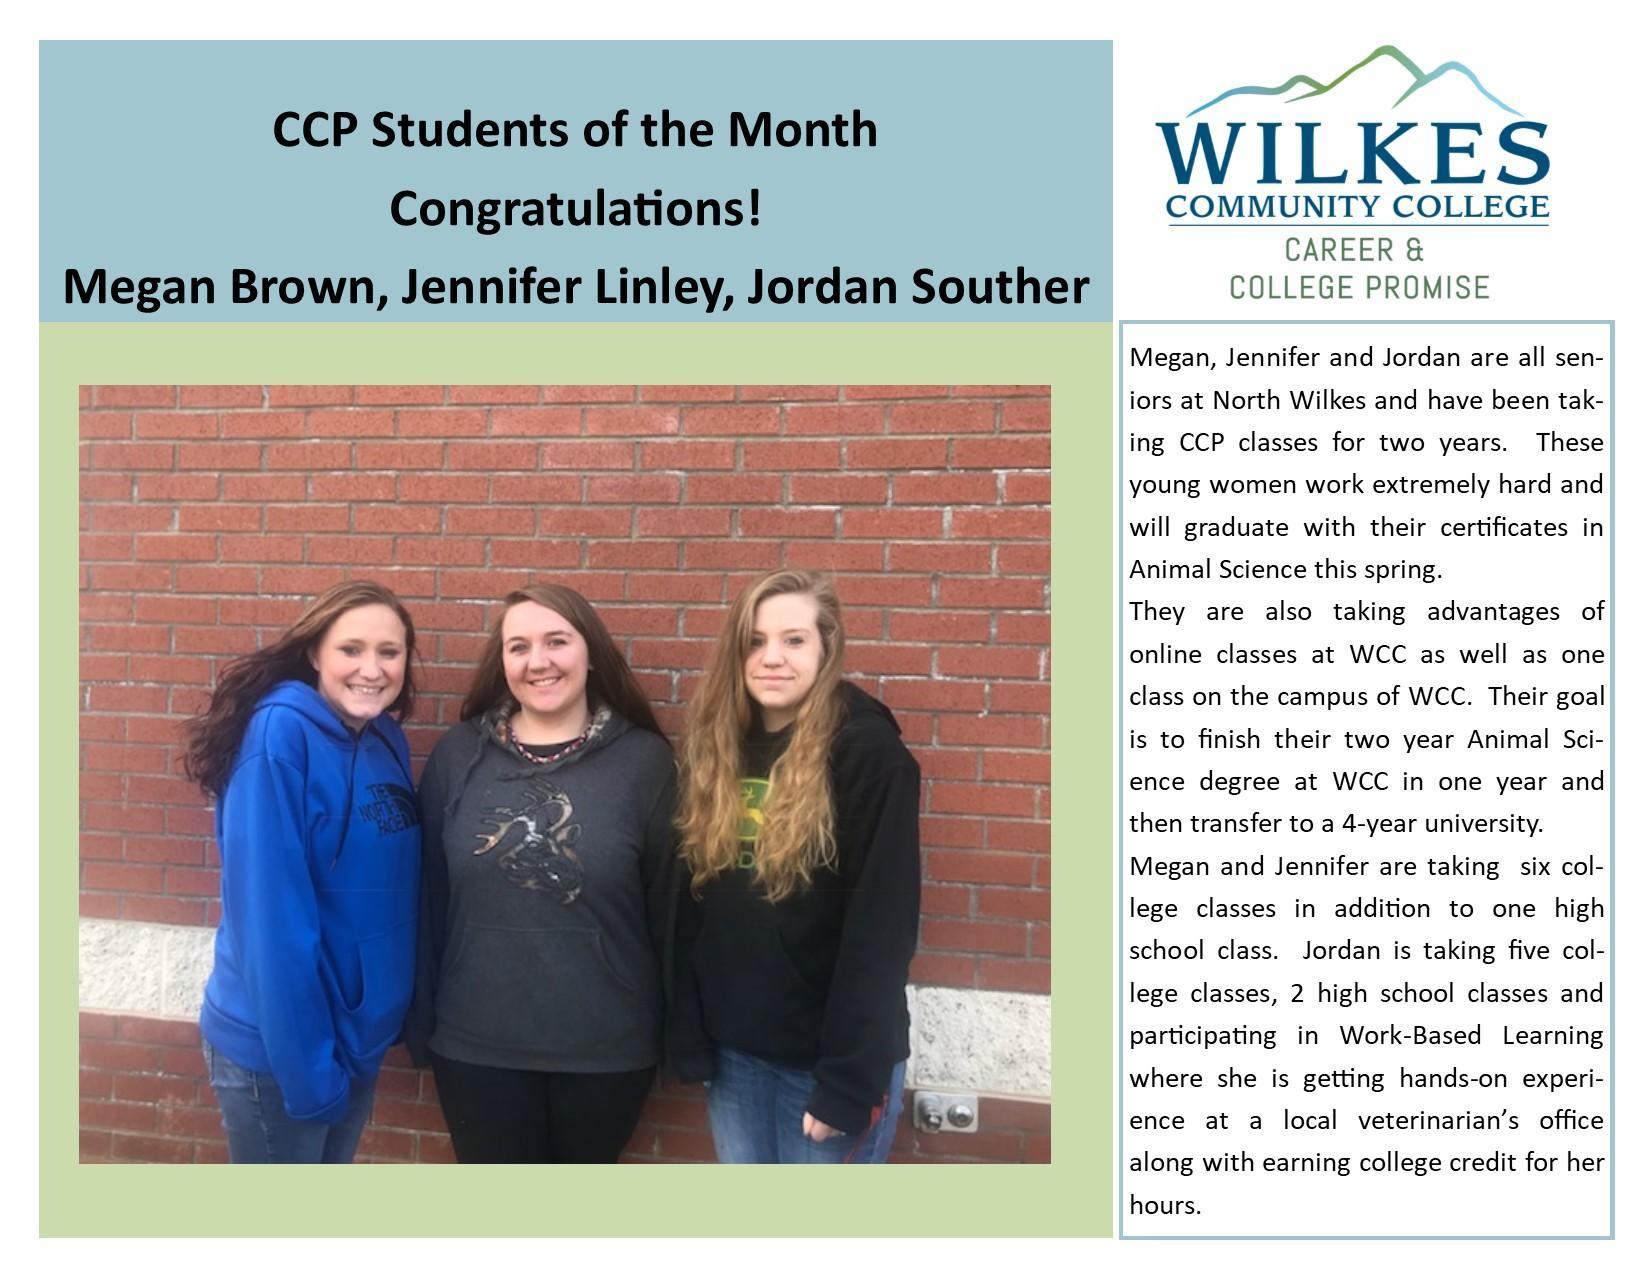 CCP Students of the Month